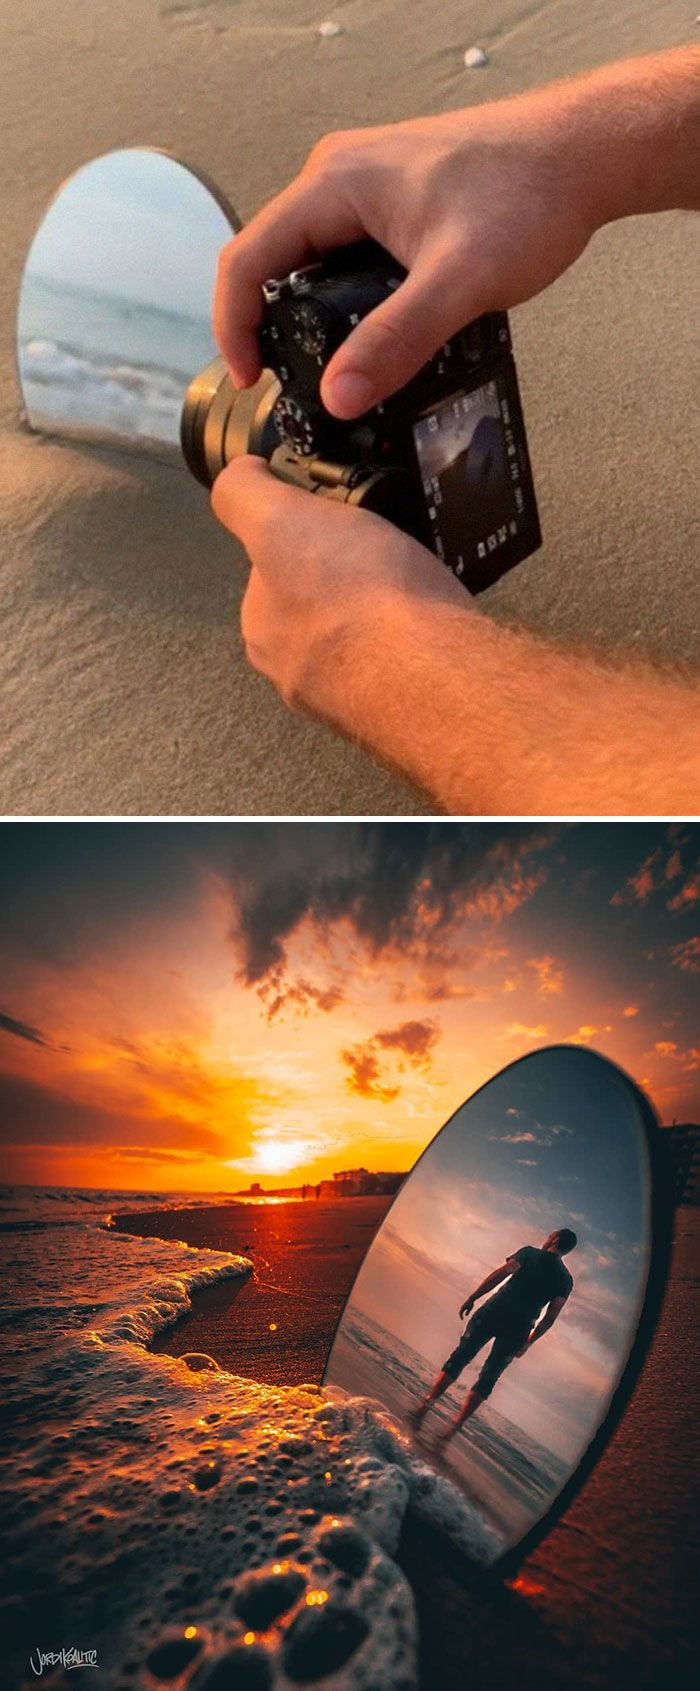 Photographer Uses Creative Tricks To Take Amazing Pictures (30 New Pics)